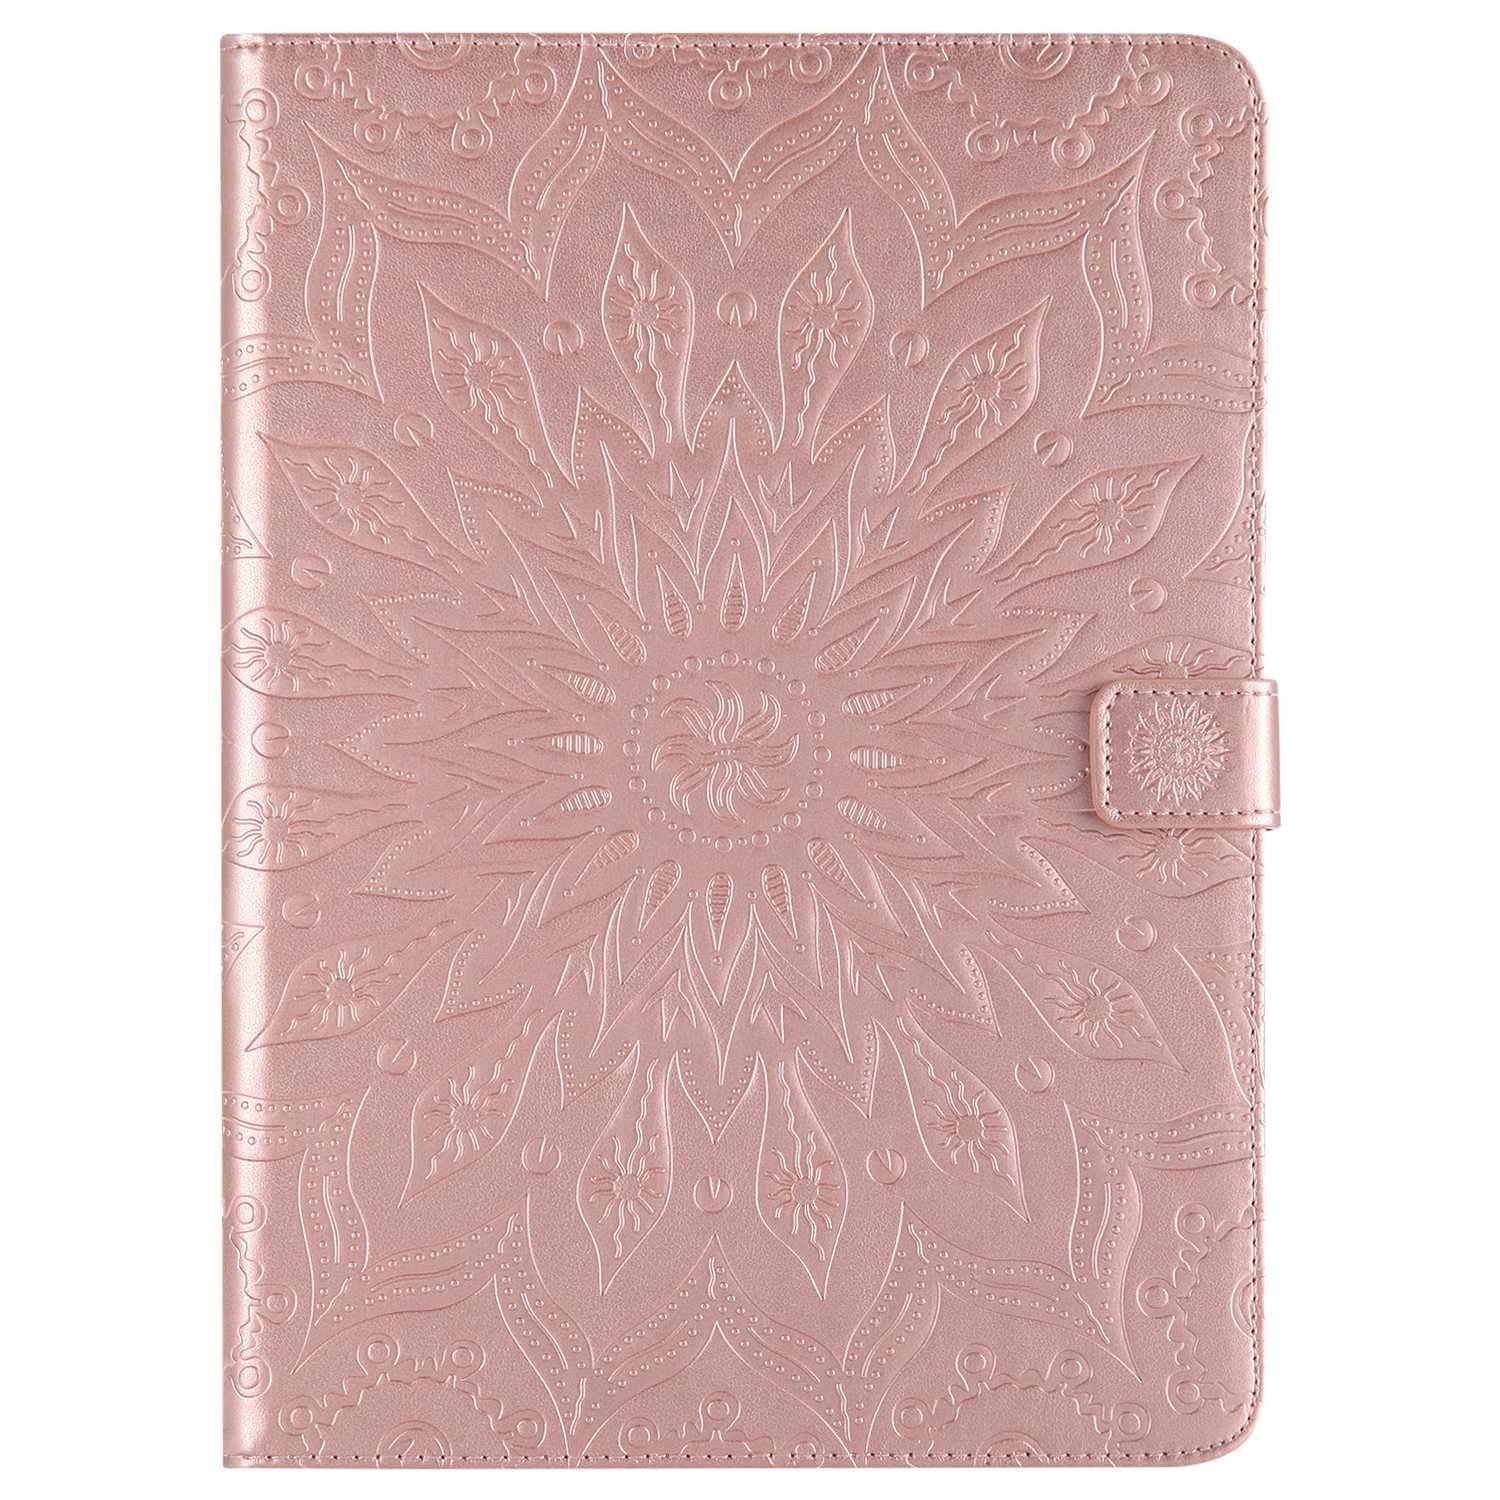 Bear Village iPad Air 2 (9.7 Inch) Case, Anti Scratch Shell with Adjust Stand, Full Body Protective Cover for Apple iPad Air 2 (9.7 Inch), Rose Gold by Bear Village